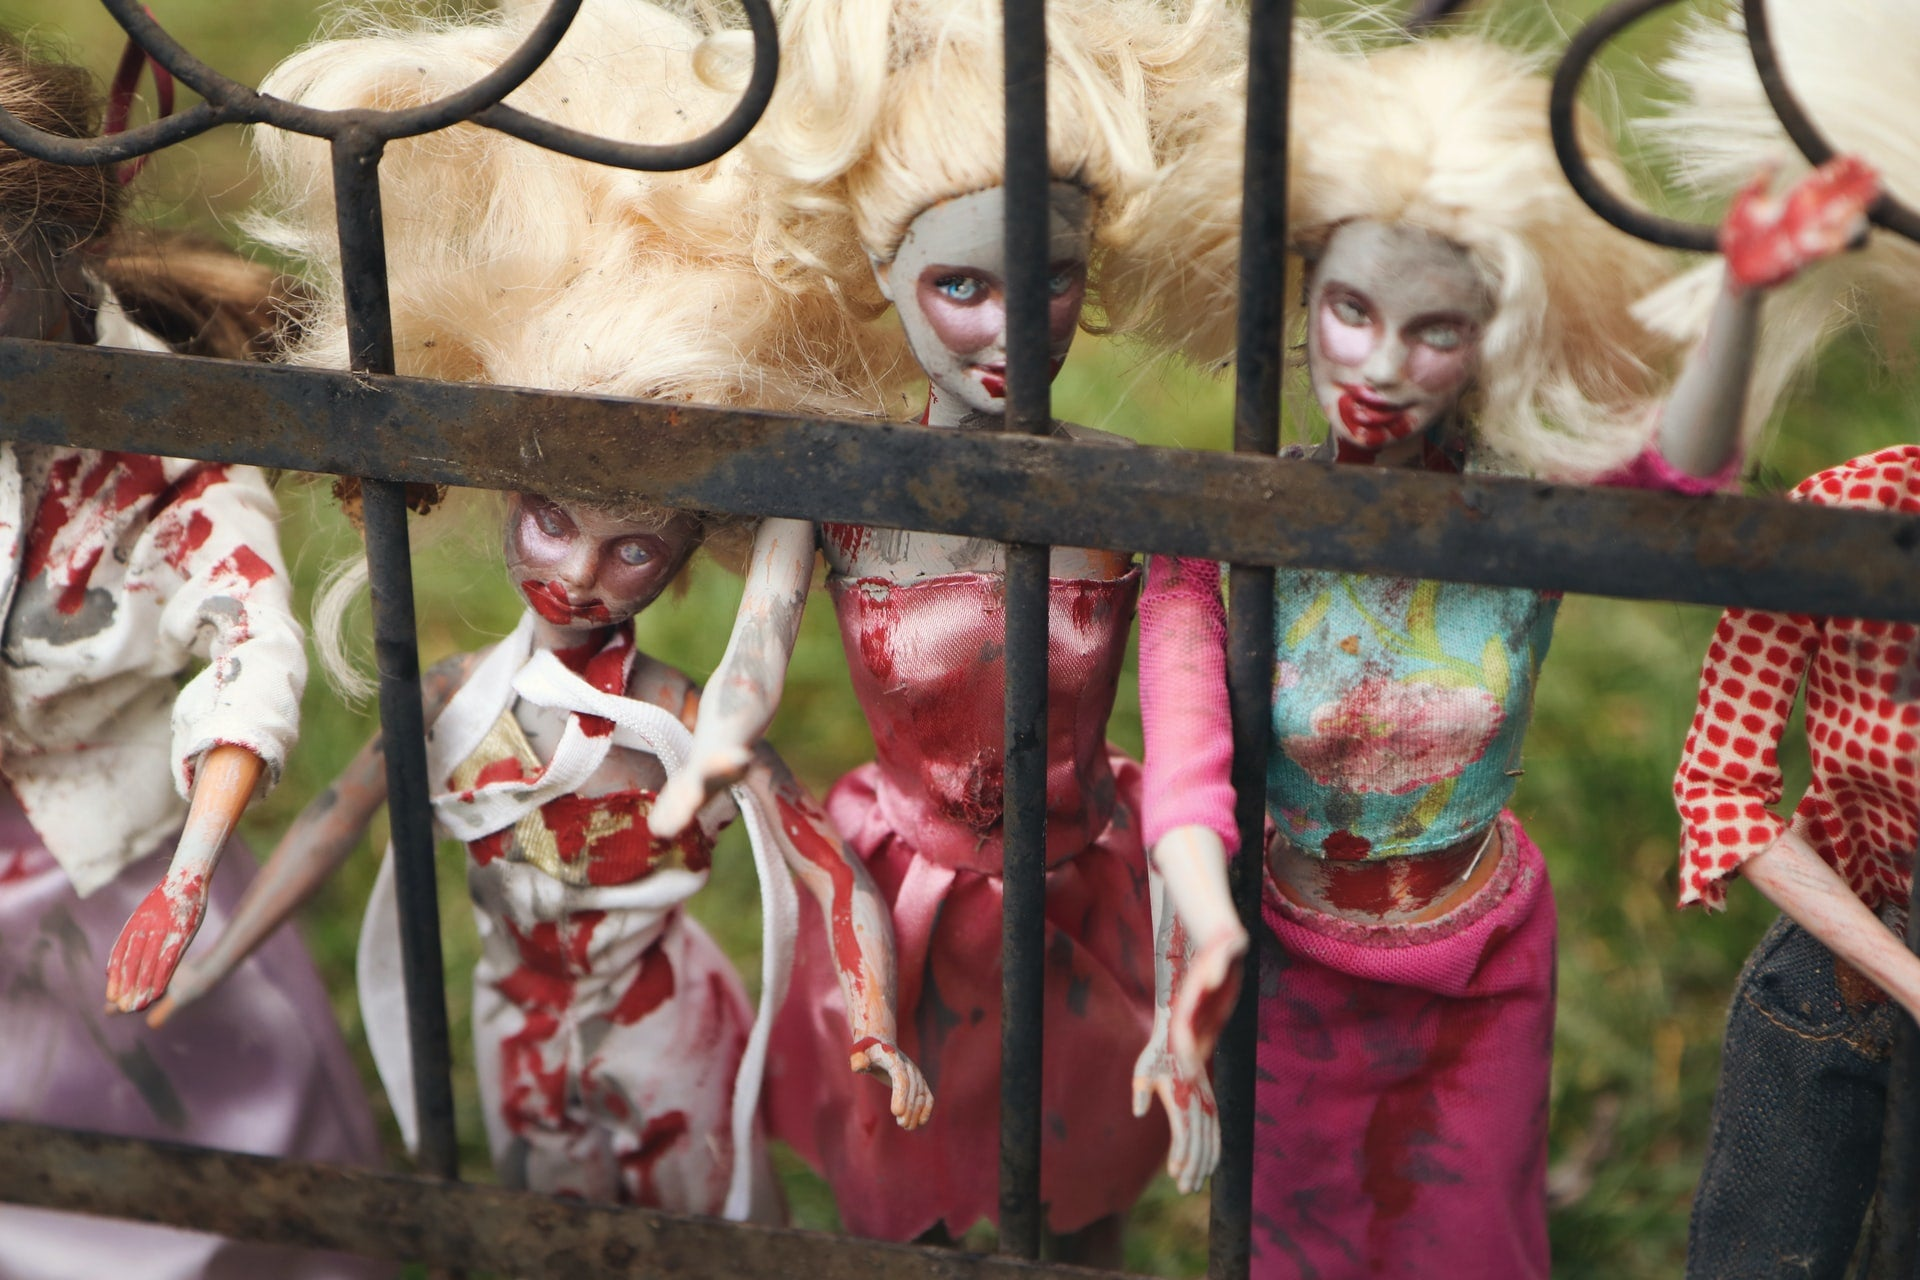 A row of Barbie dolls with fake blood